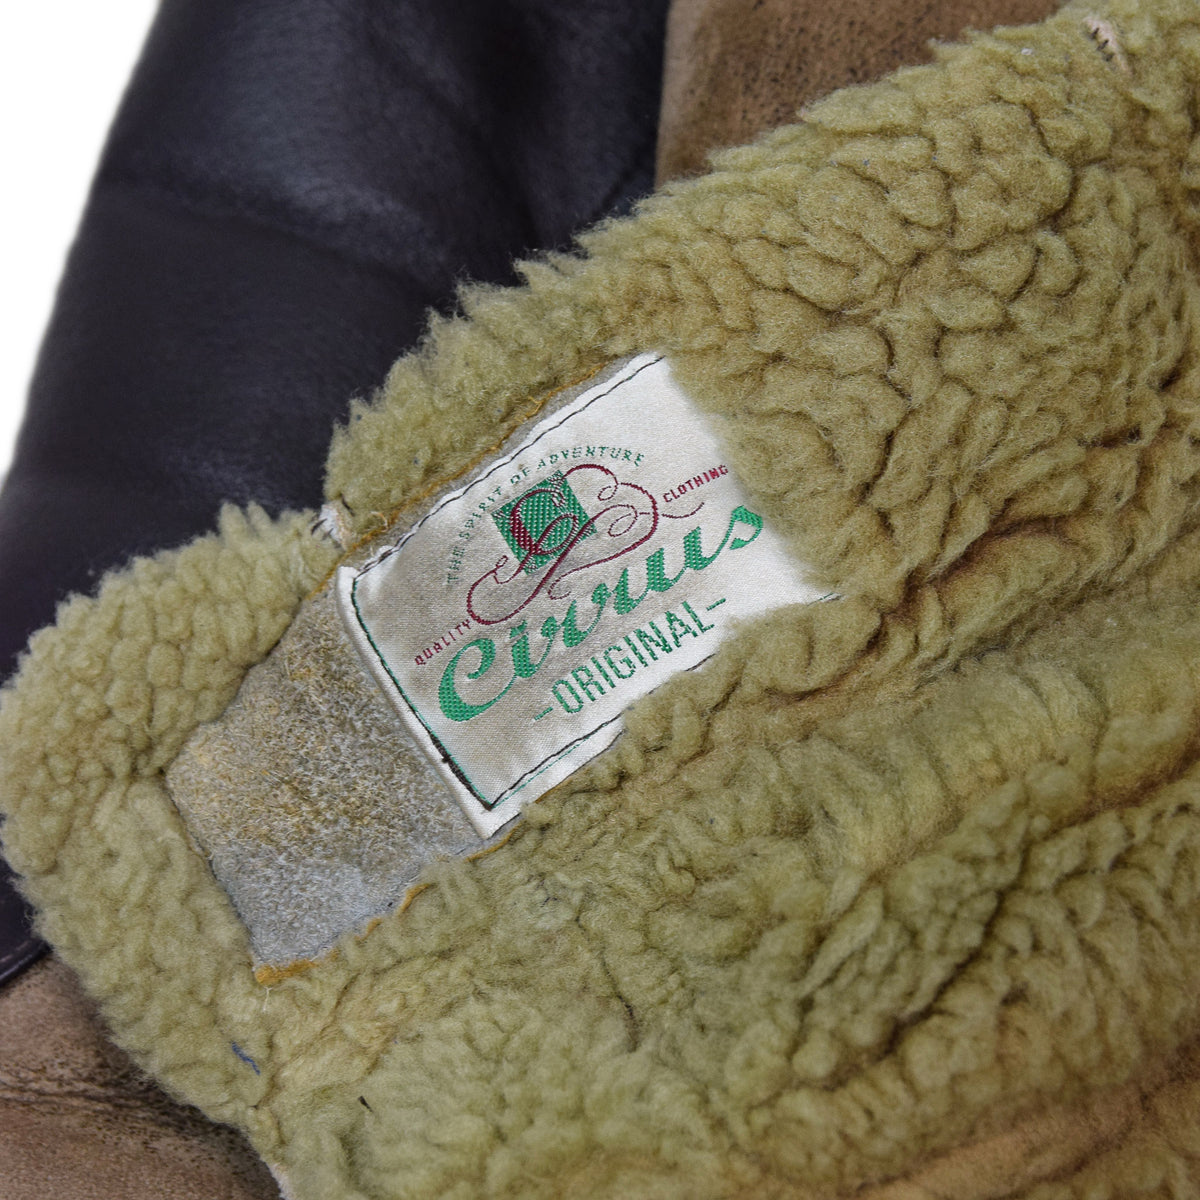 Vintage 90s Cirrus Gunner Sheepskin Leather Flying Jacket Made In England L / XL label